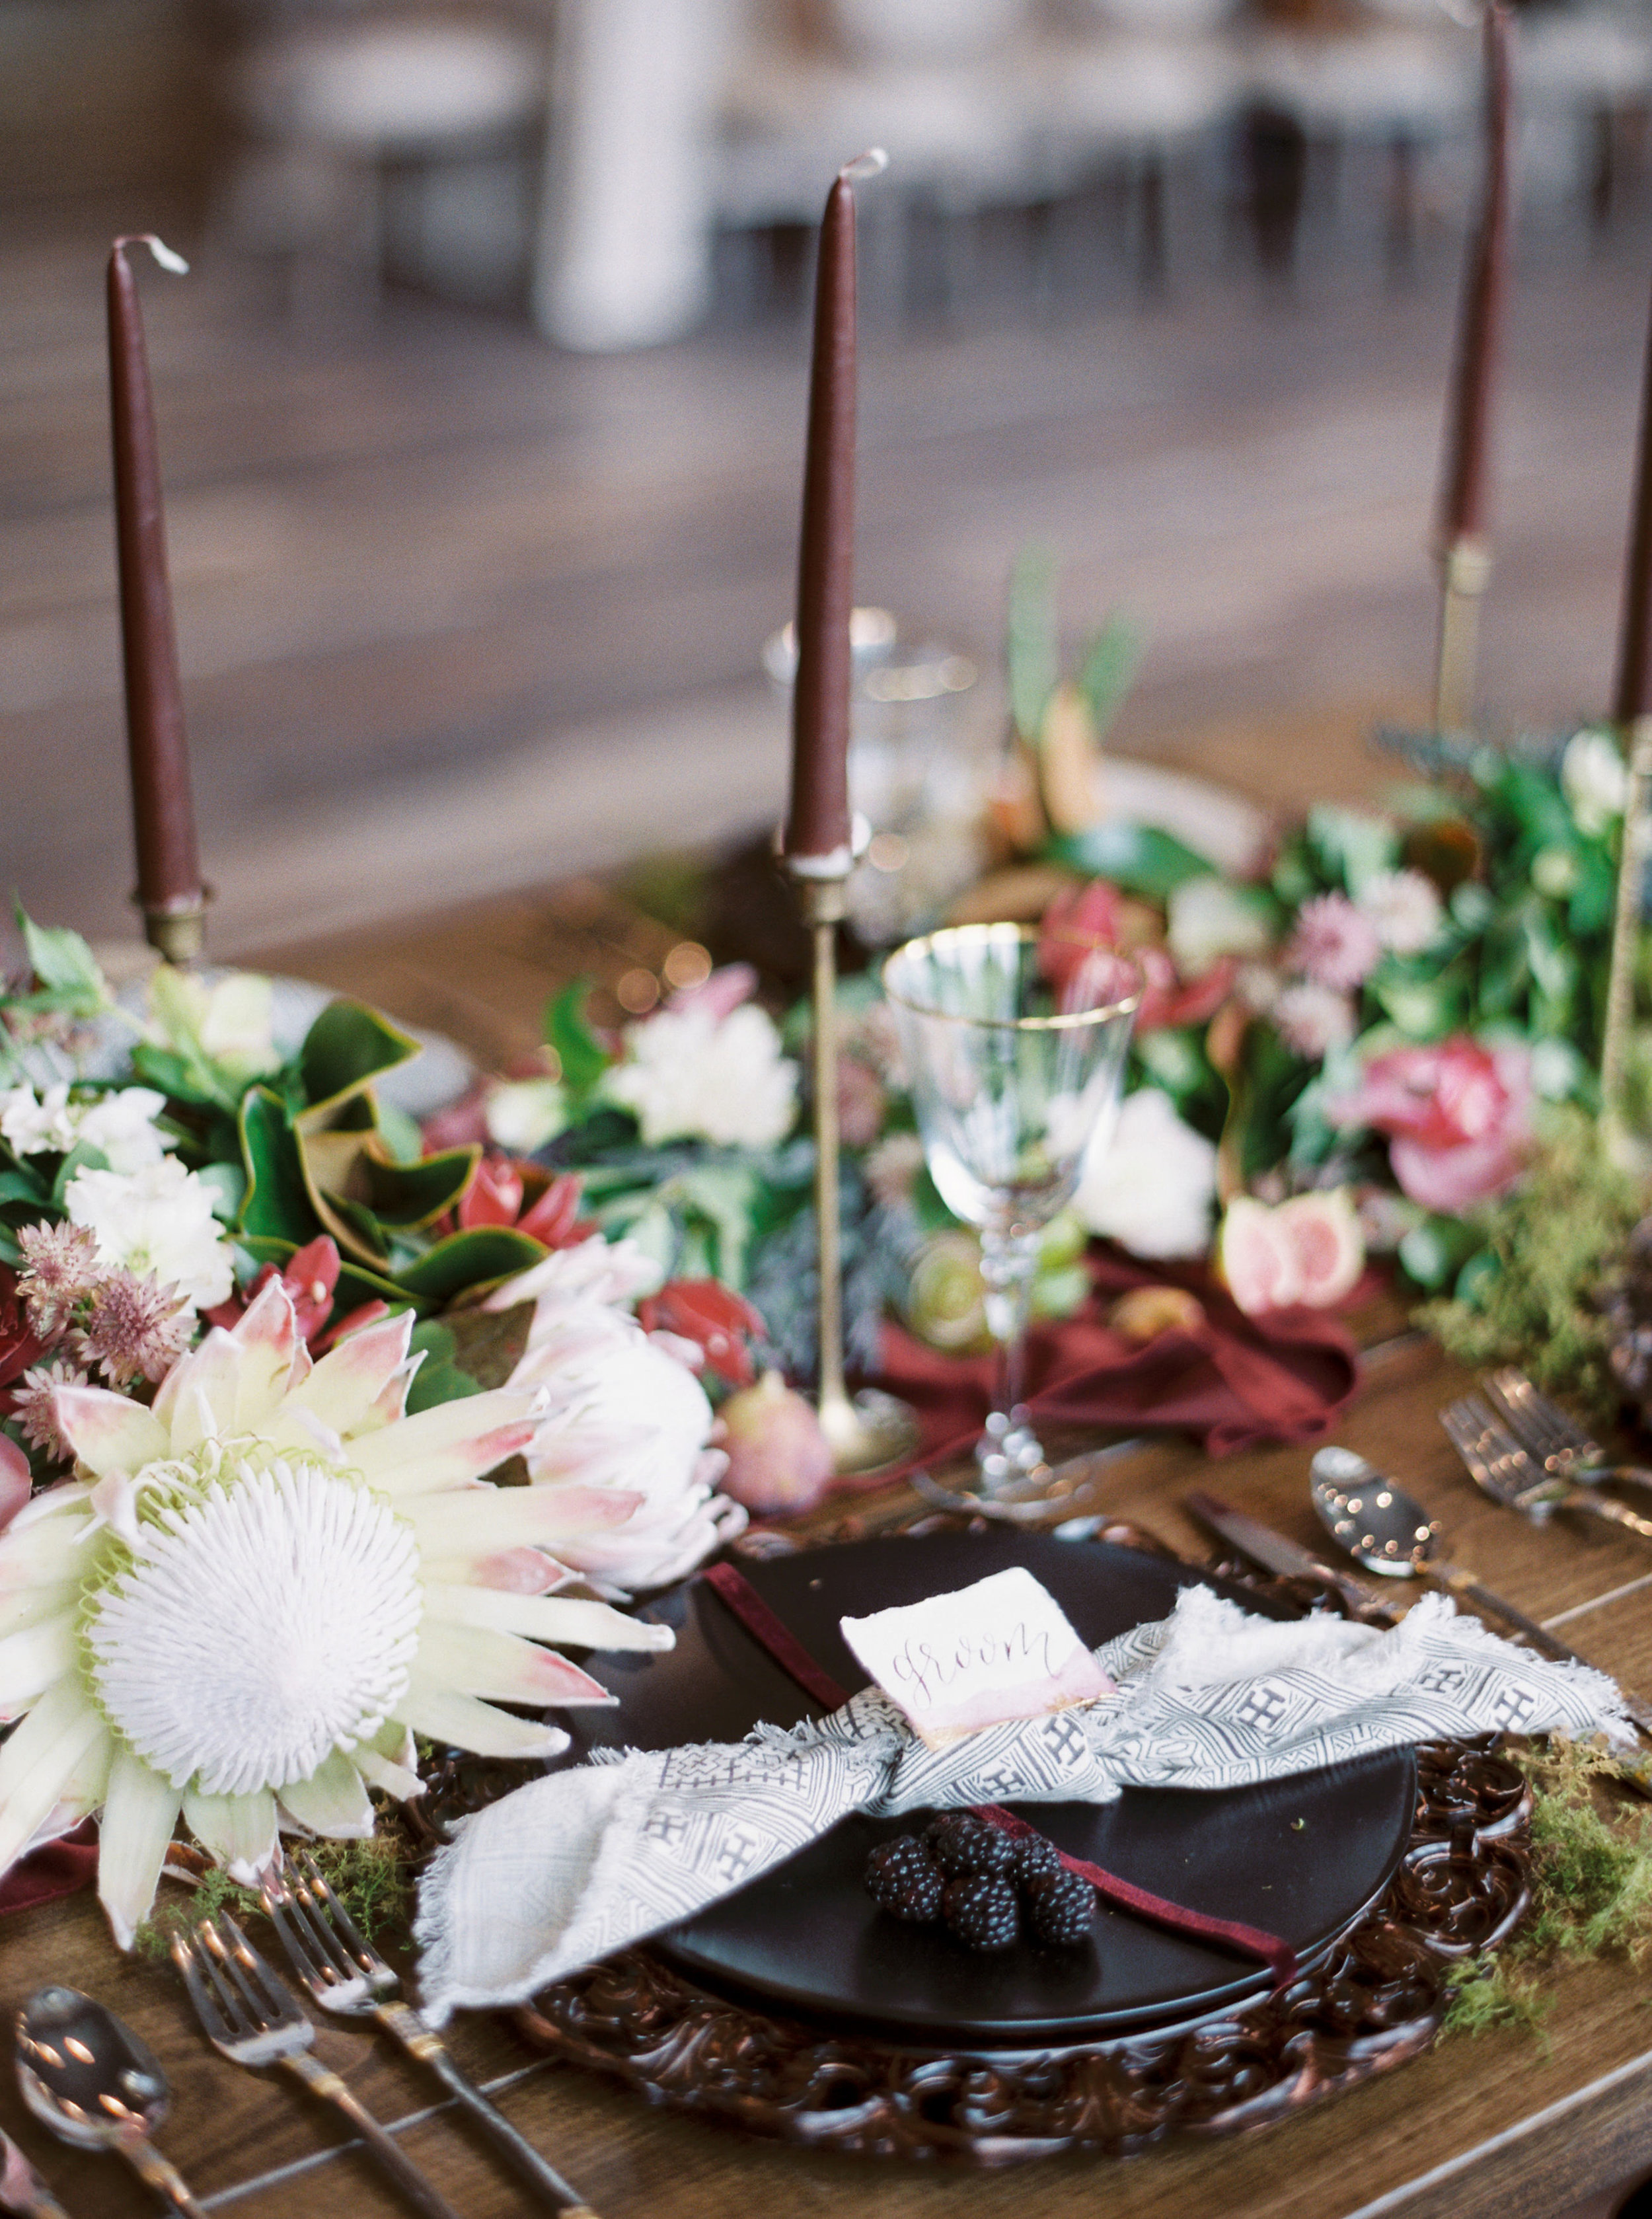 boho-inspired-wedding-at-casa-bella-in-sunol-california-21.jpg